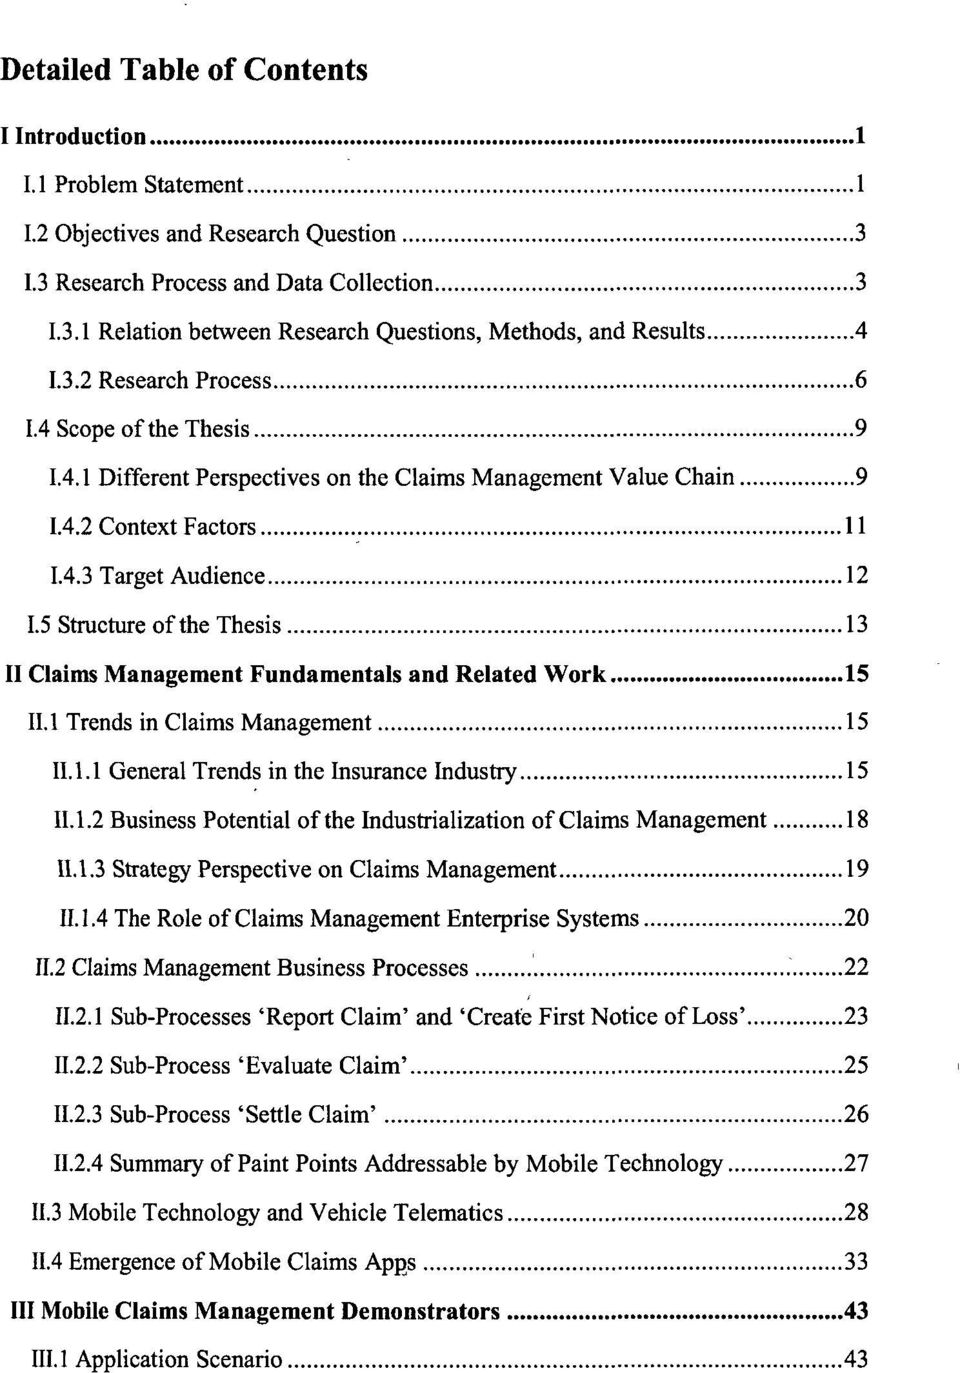 5 Structure of the Thesis 13 II Claims Management Fundamentals and Related Work 15 II. 1 Trends in Claims Management 15 II. 1.1 General Trends in the Insurance Industry 15 II. 1.2 Business Potential of the Industrialization of Claims Management 18 11.